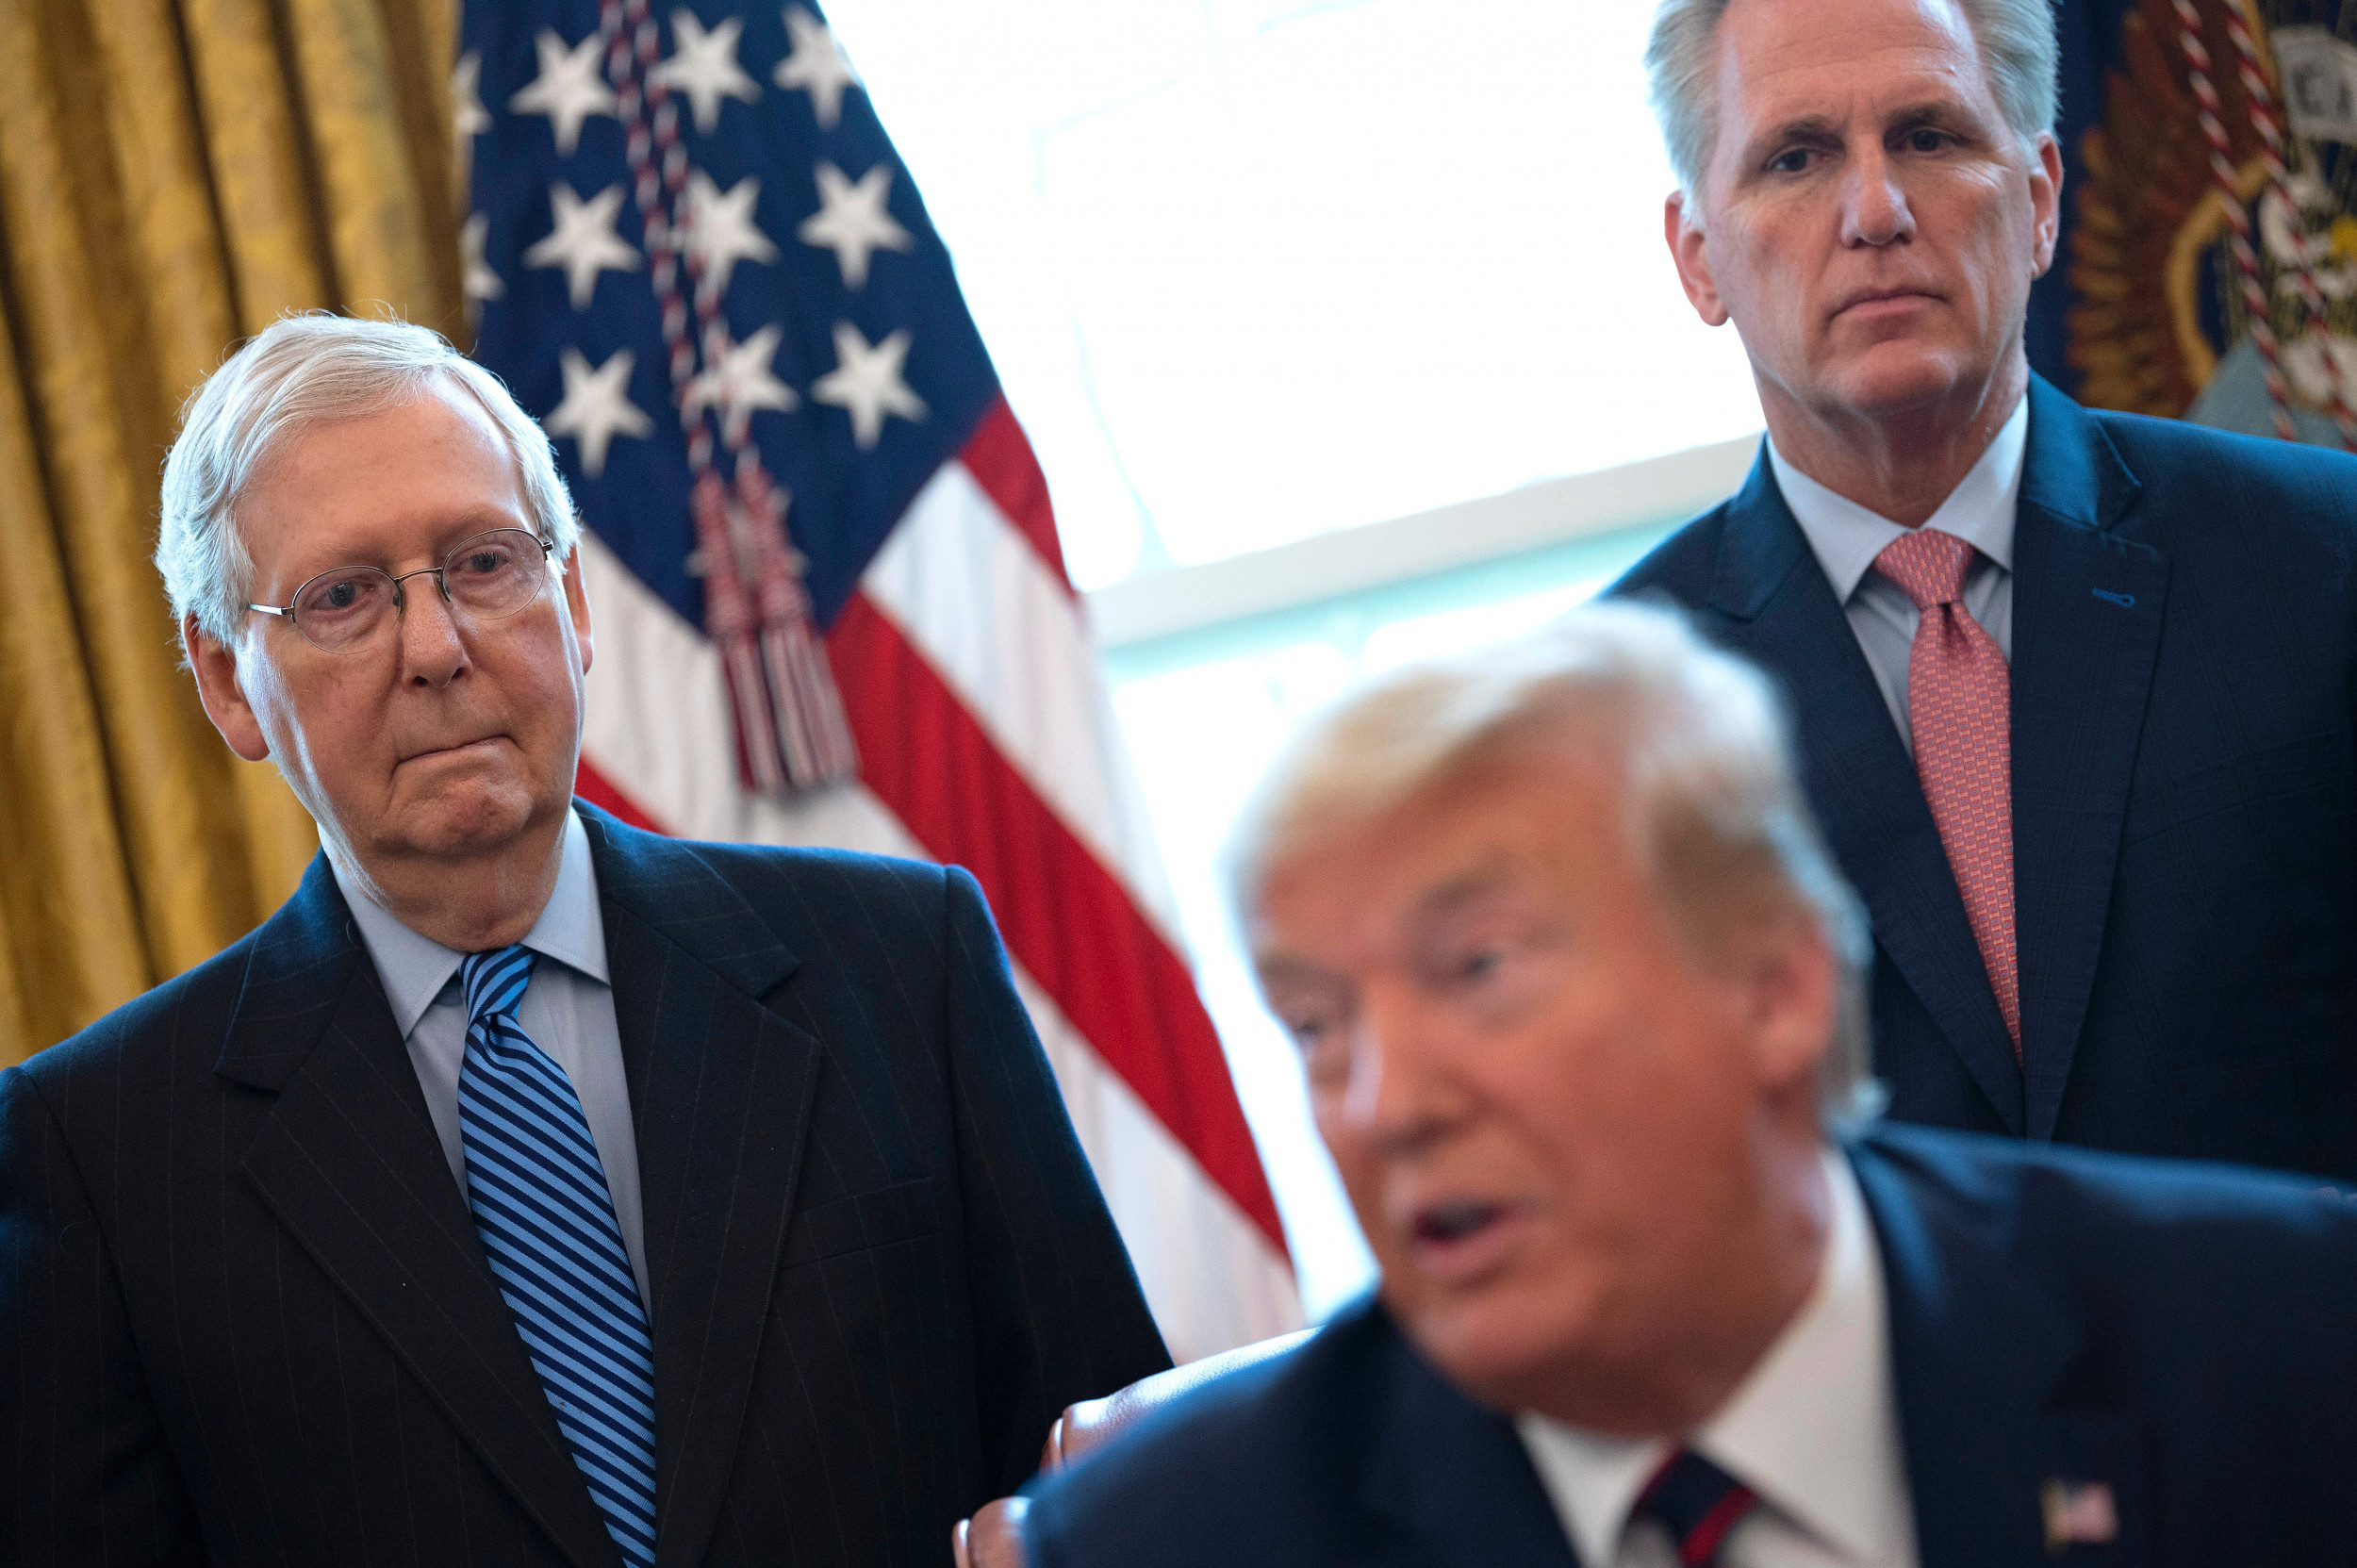 GOP leaders skip Trump farewell after McConnell blames him for Capitol riot